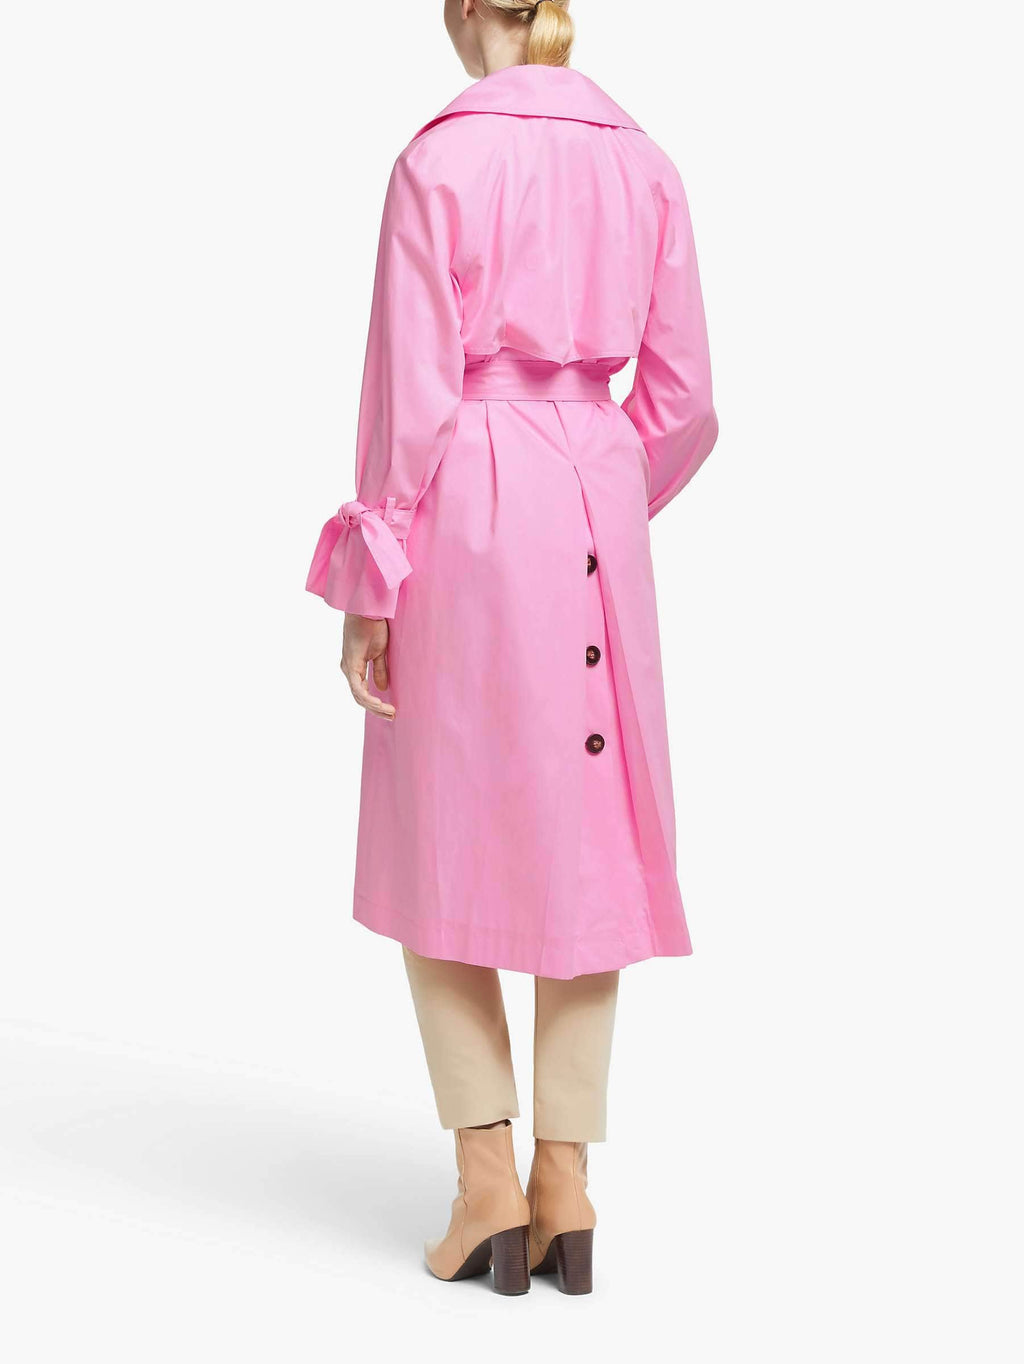 Marella Coats and Jackets Marella Pink Rosatea Trench Coat 30210101 izzi-of-baslow